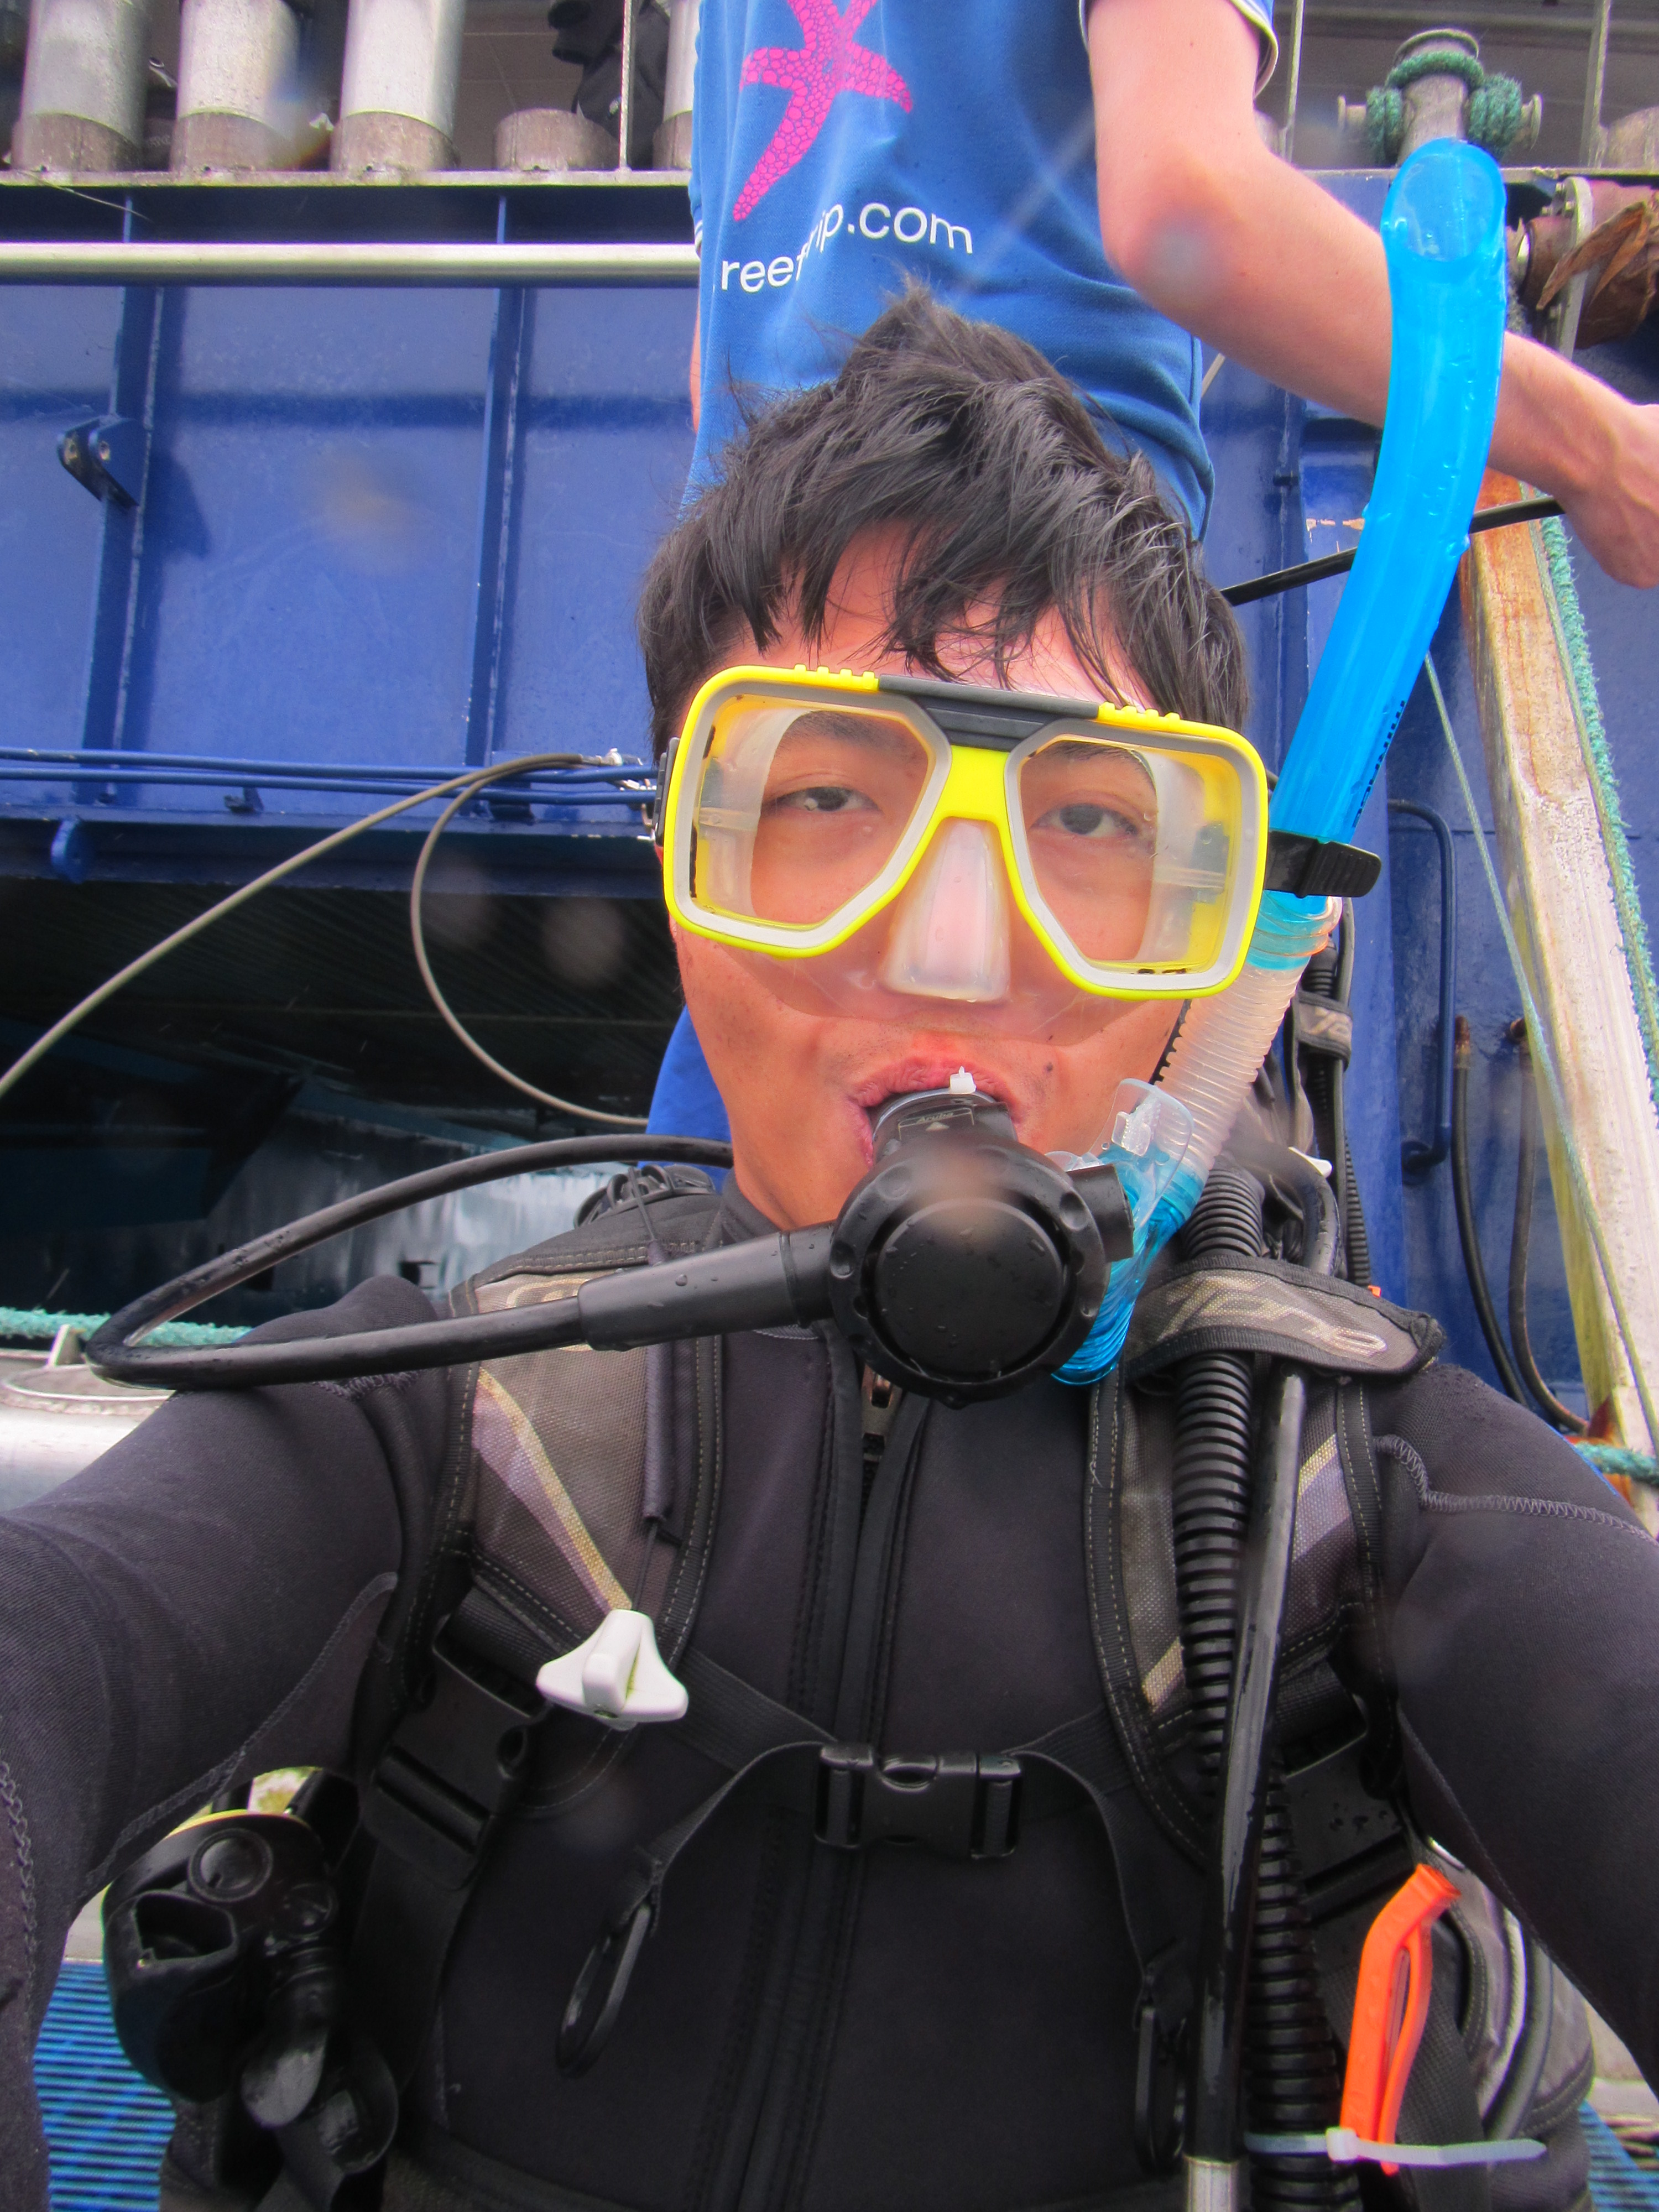 07. Selfie before diving